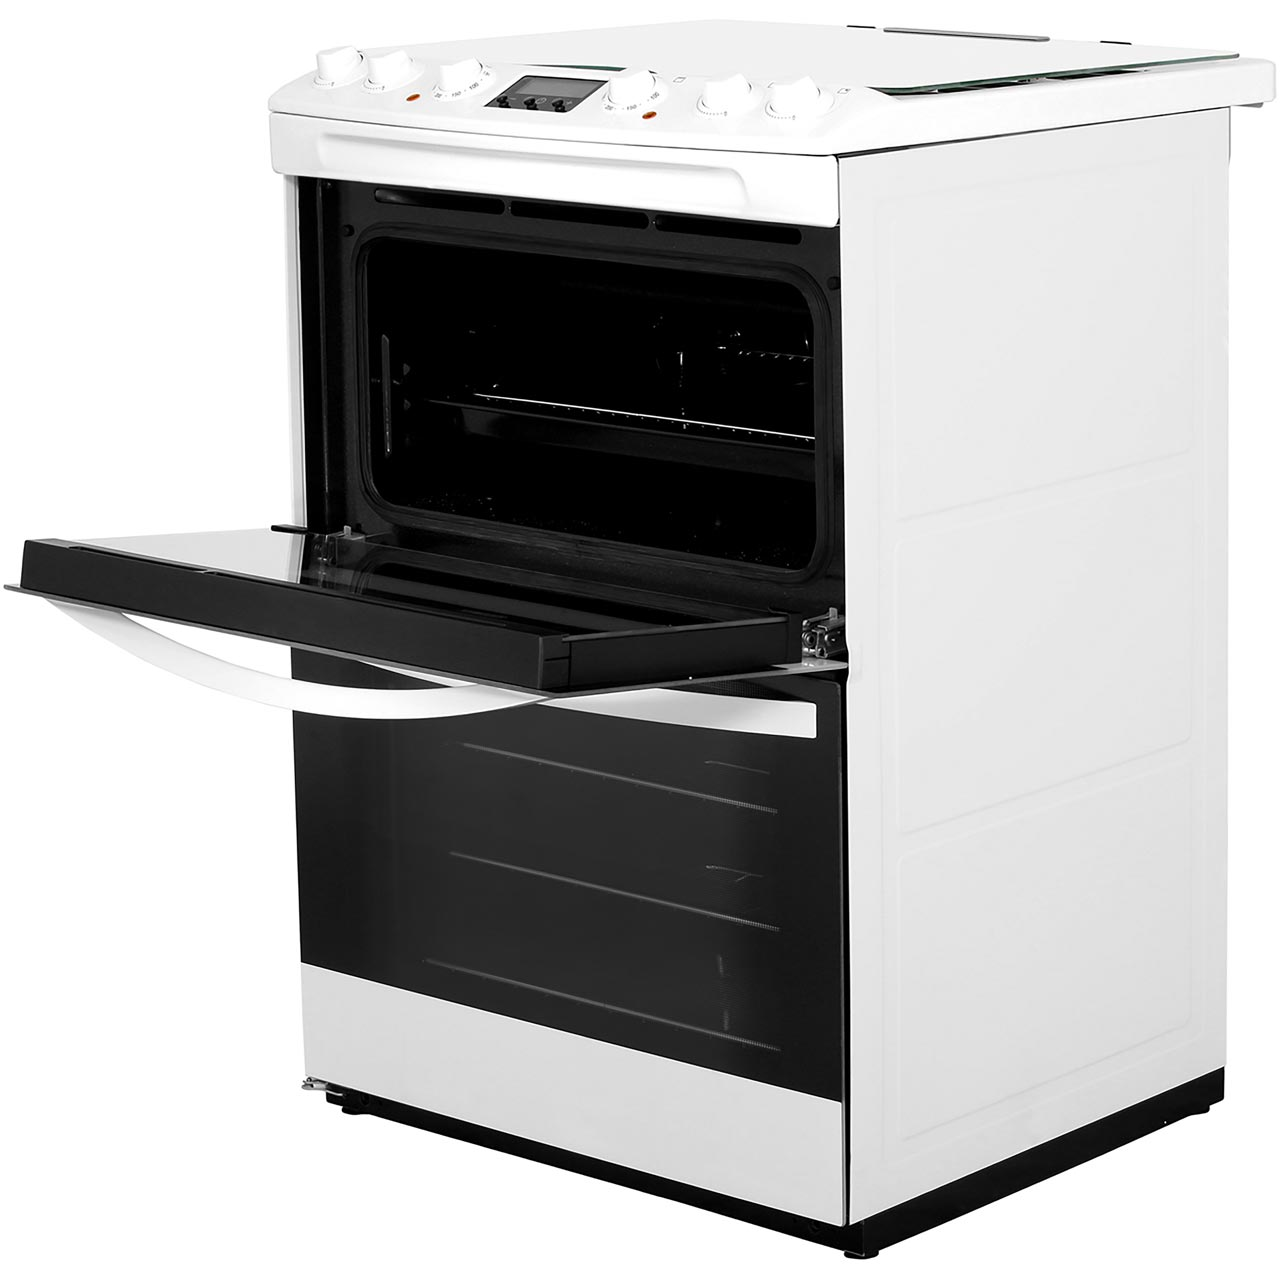 Zanussi Zck68200x Free Standing Dual Fuel Cooker With Gas